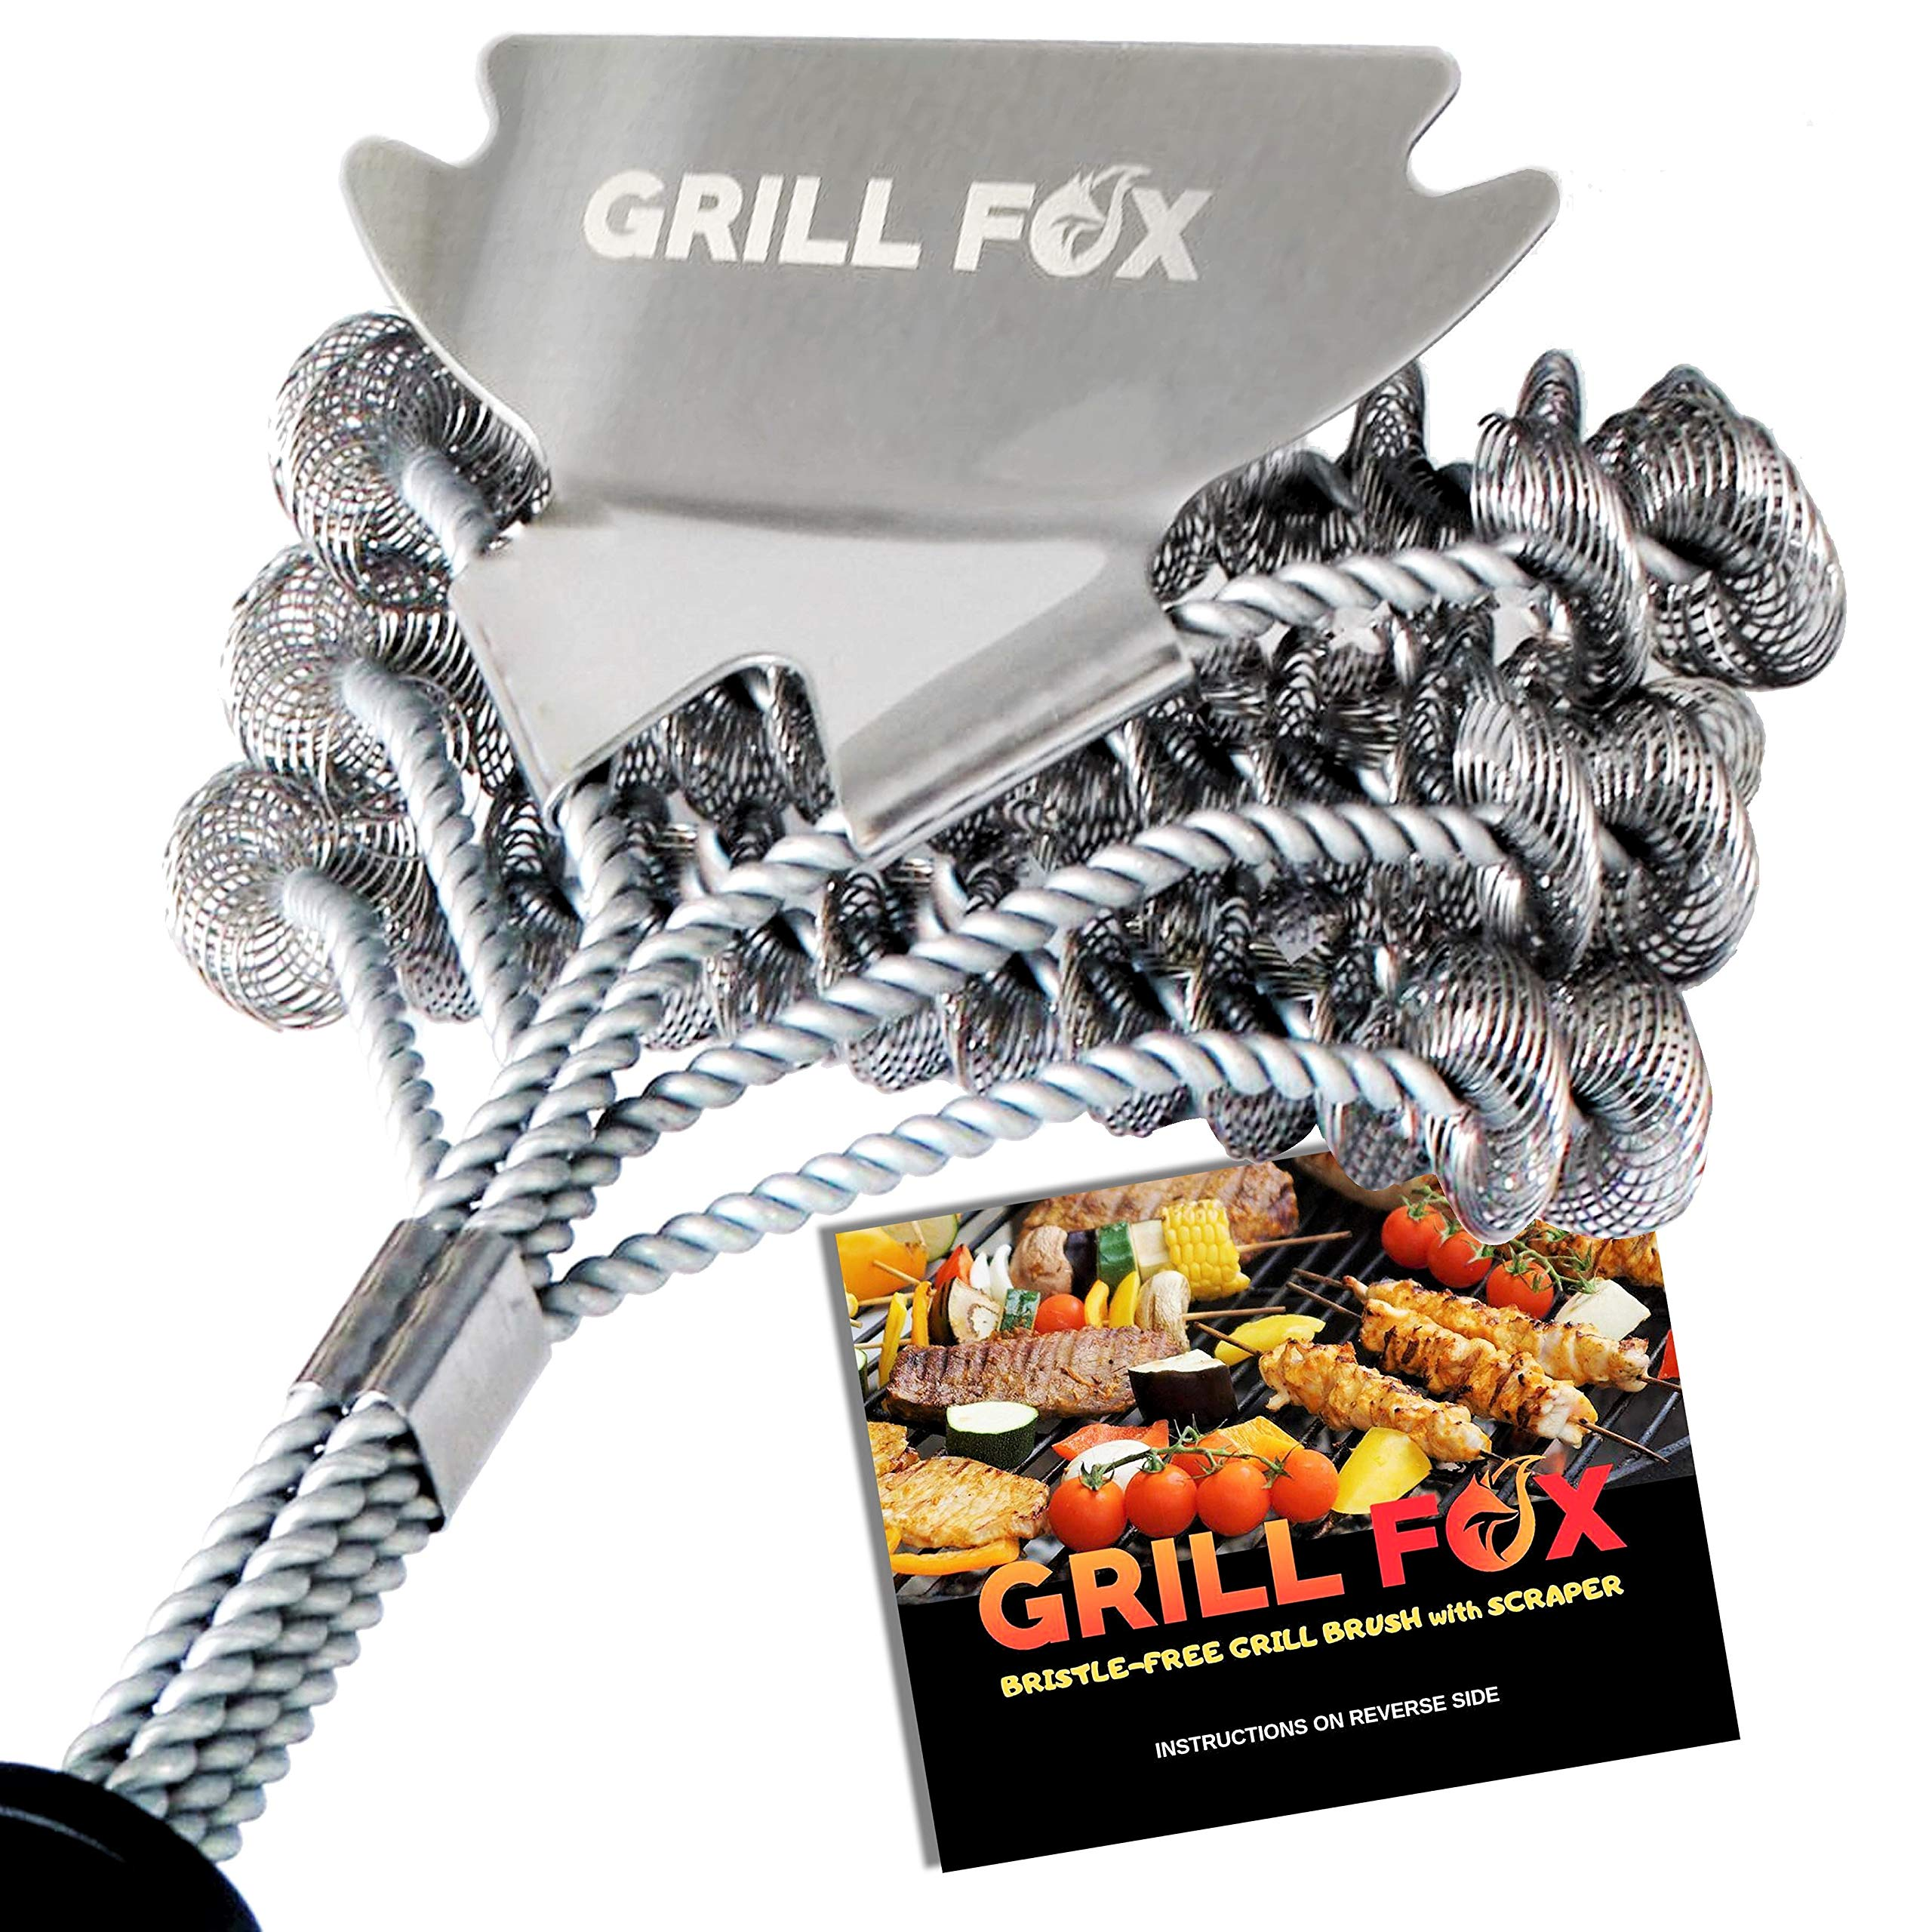 GRILL FOX Grill Brush Bristle Free - Safe BBQ Cleaner with Scraper - Durable 18'' Stainless Steel Scrubber for Cleaning Gas and Charcoal Barbecue Grates and Grills - Grilling Accessories Tool Gift by GRILL FOX